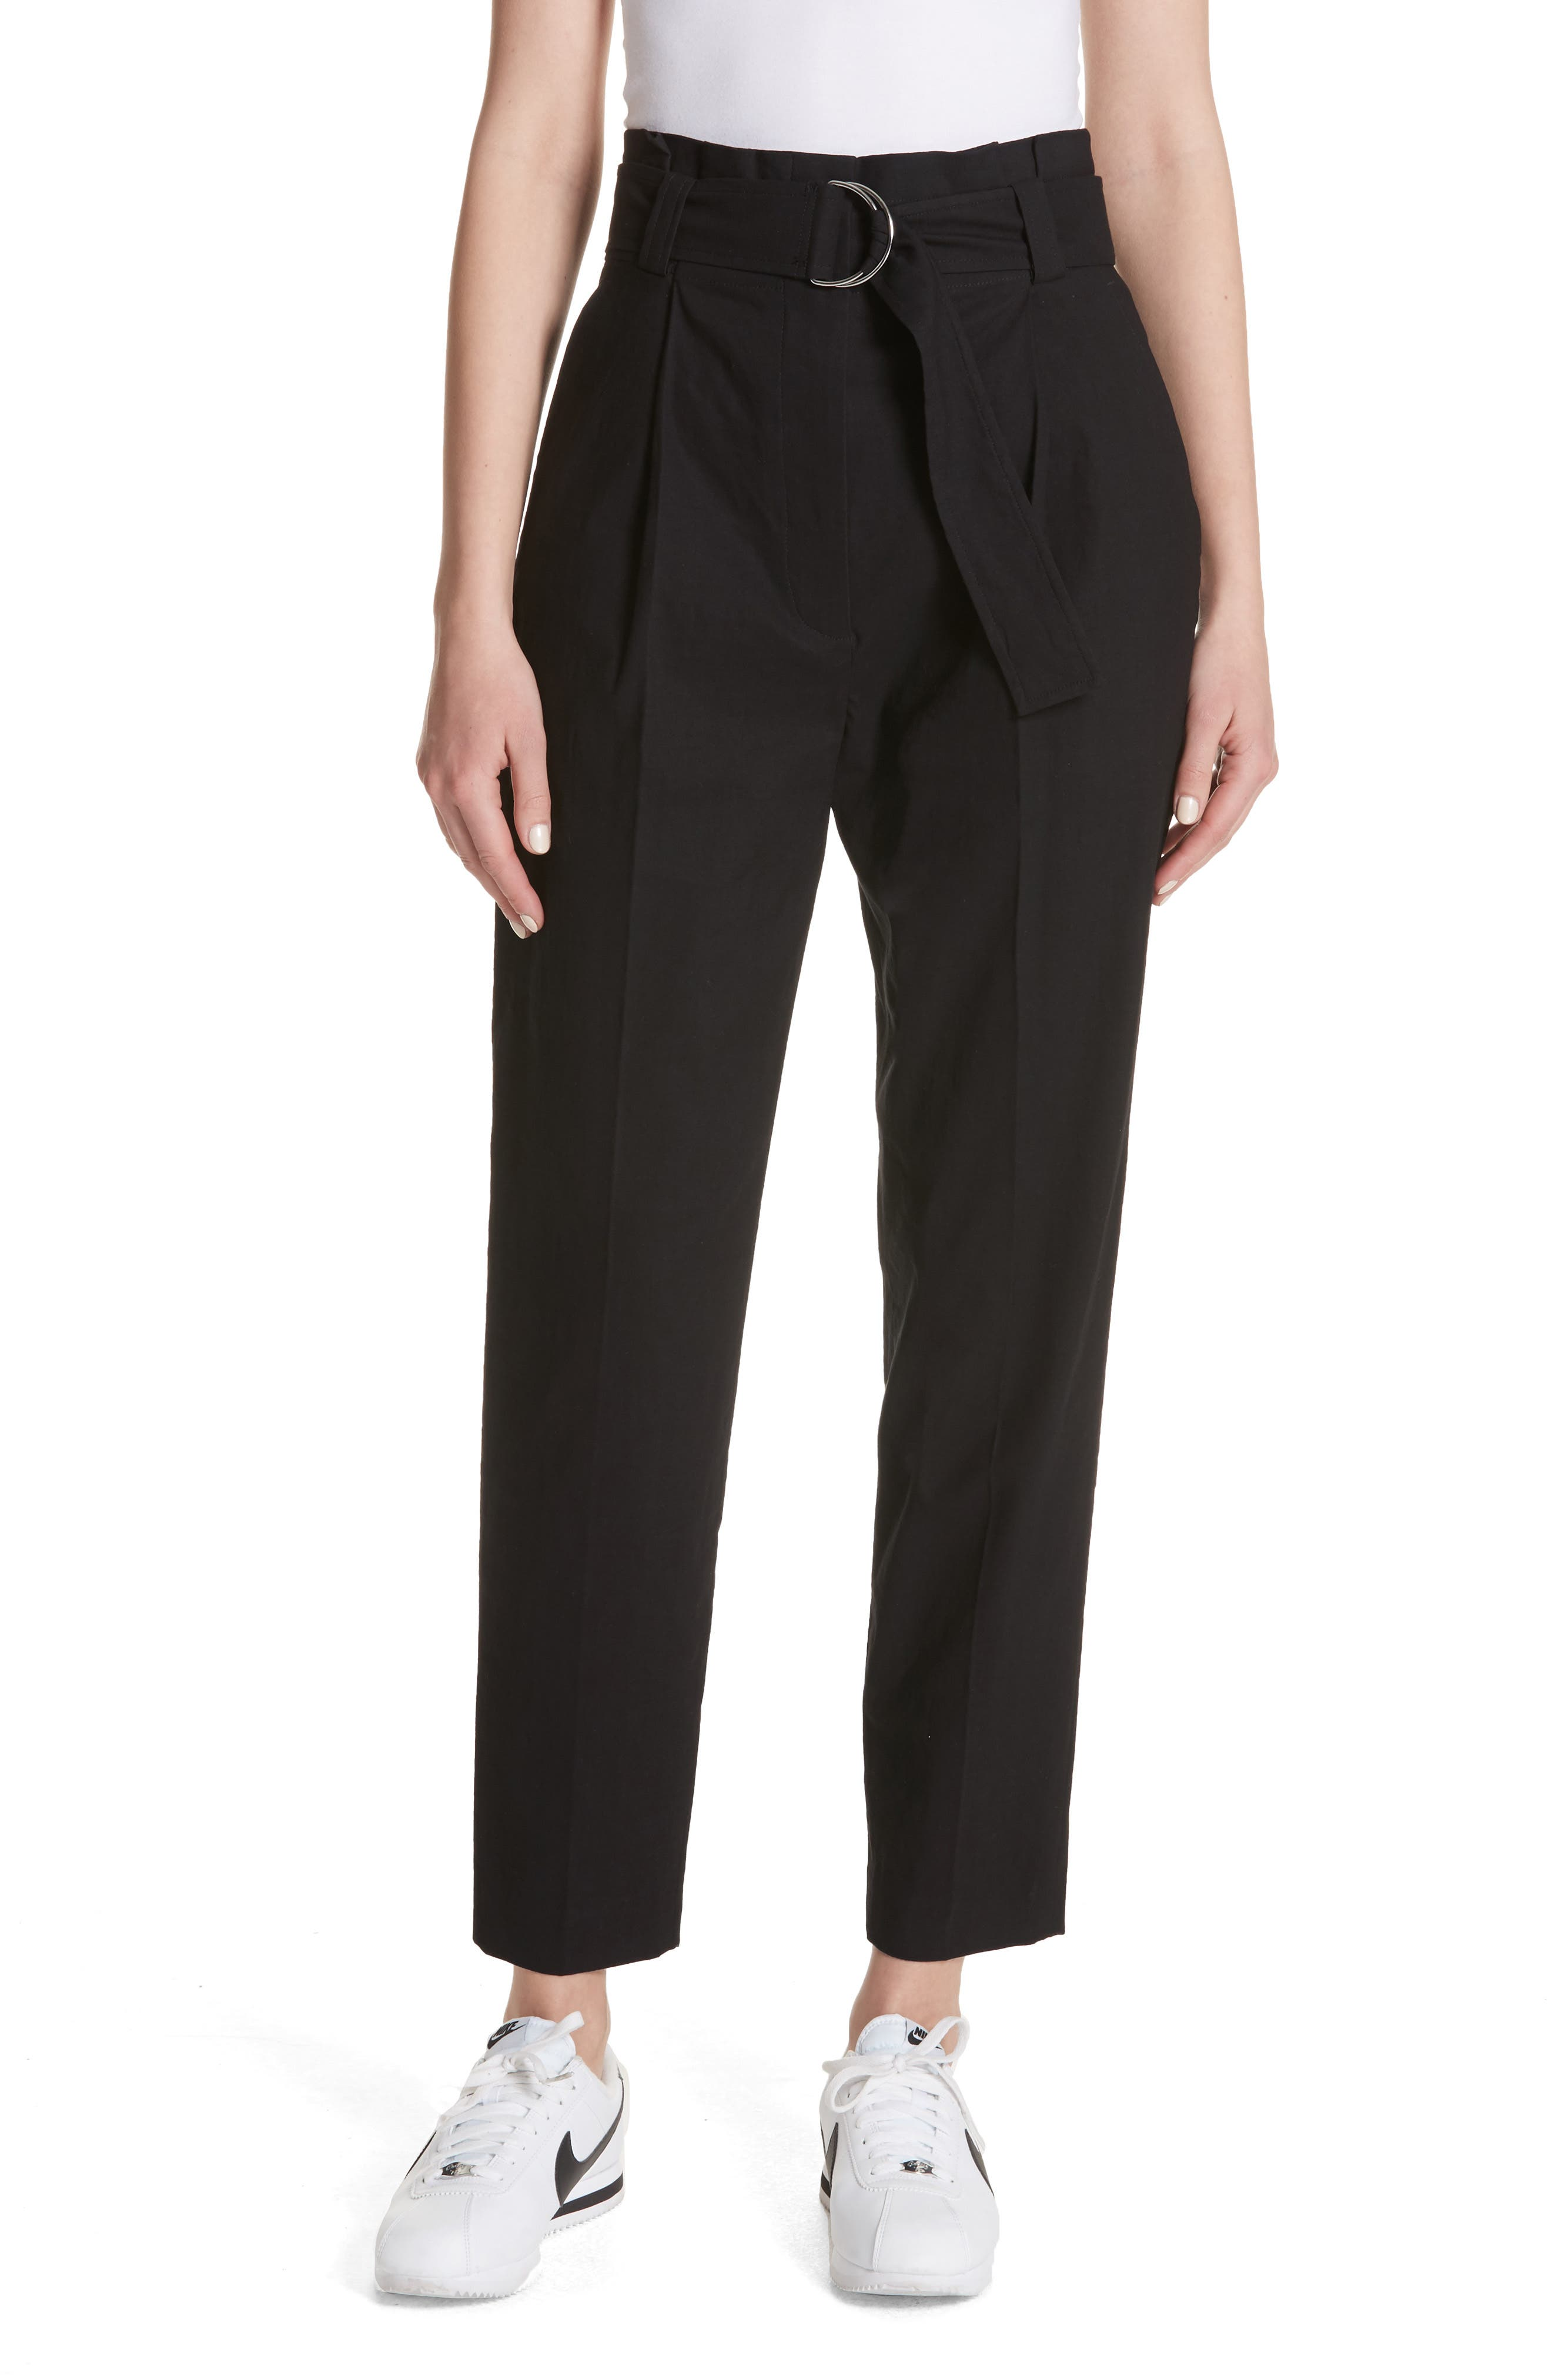 Diego High Waist Pants,                             Main thumbnail 1, color,                             Black